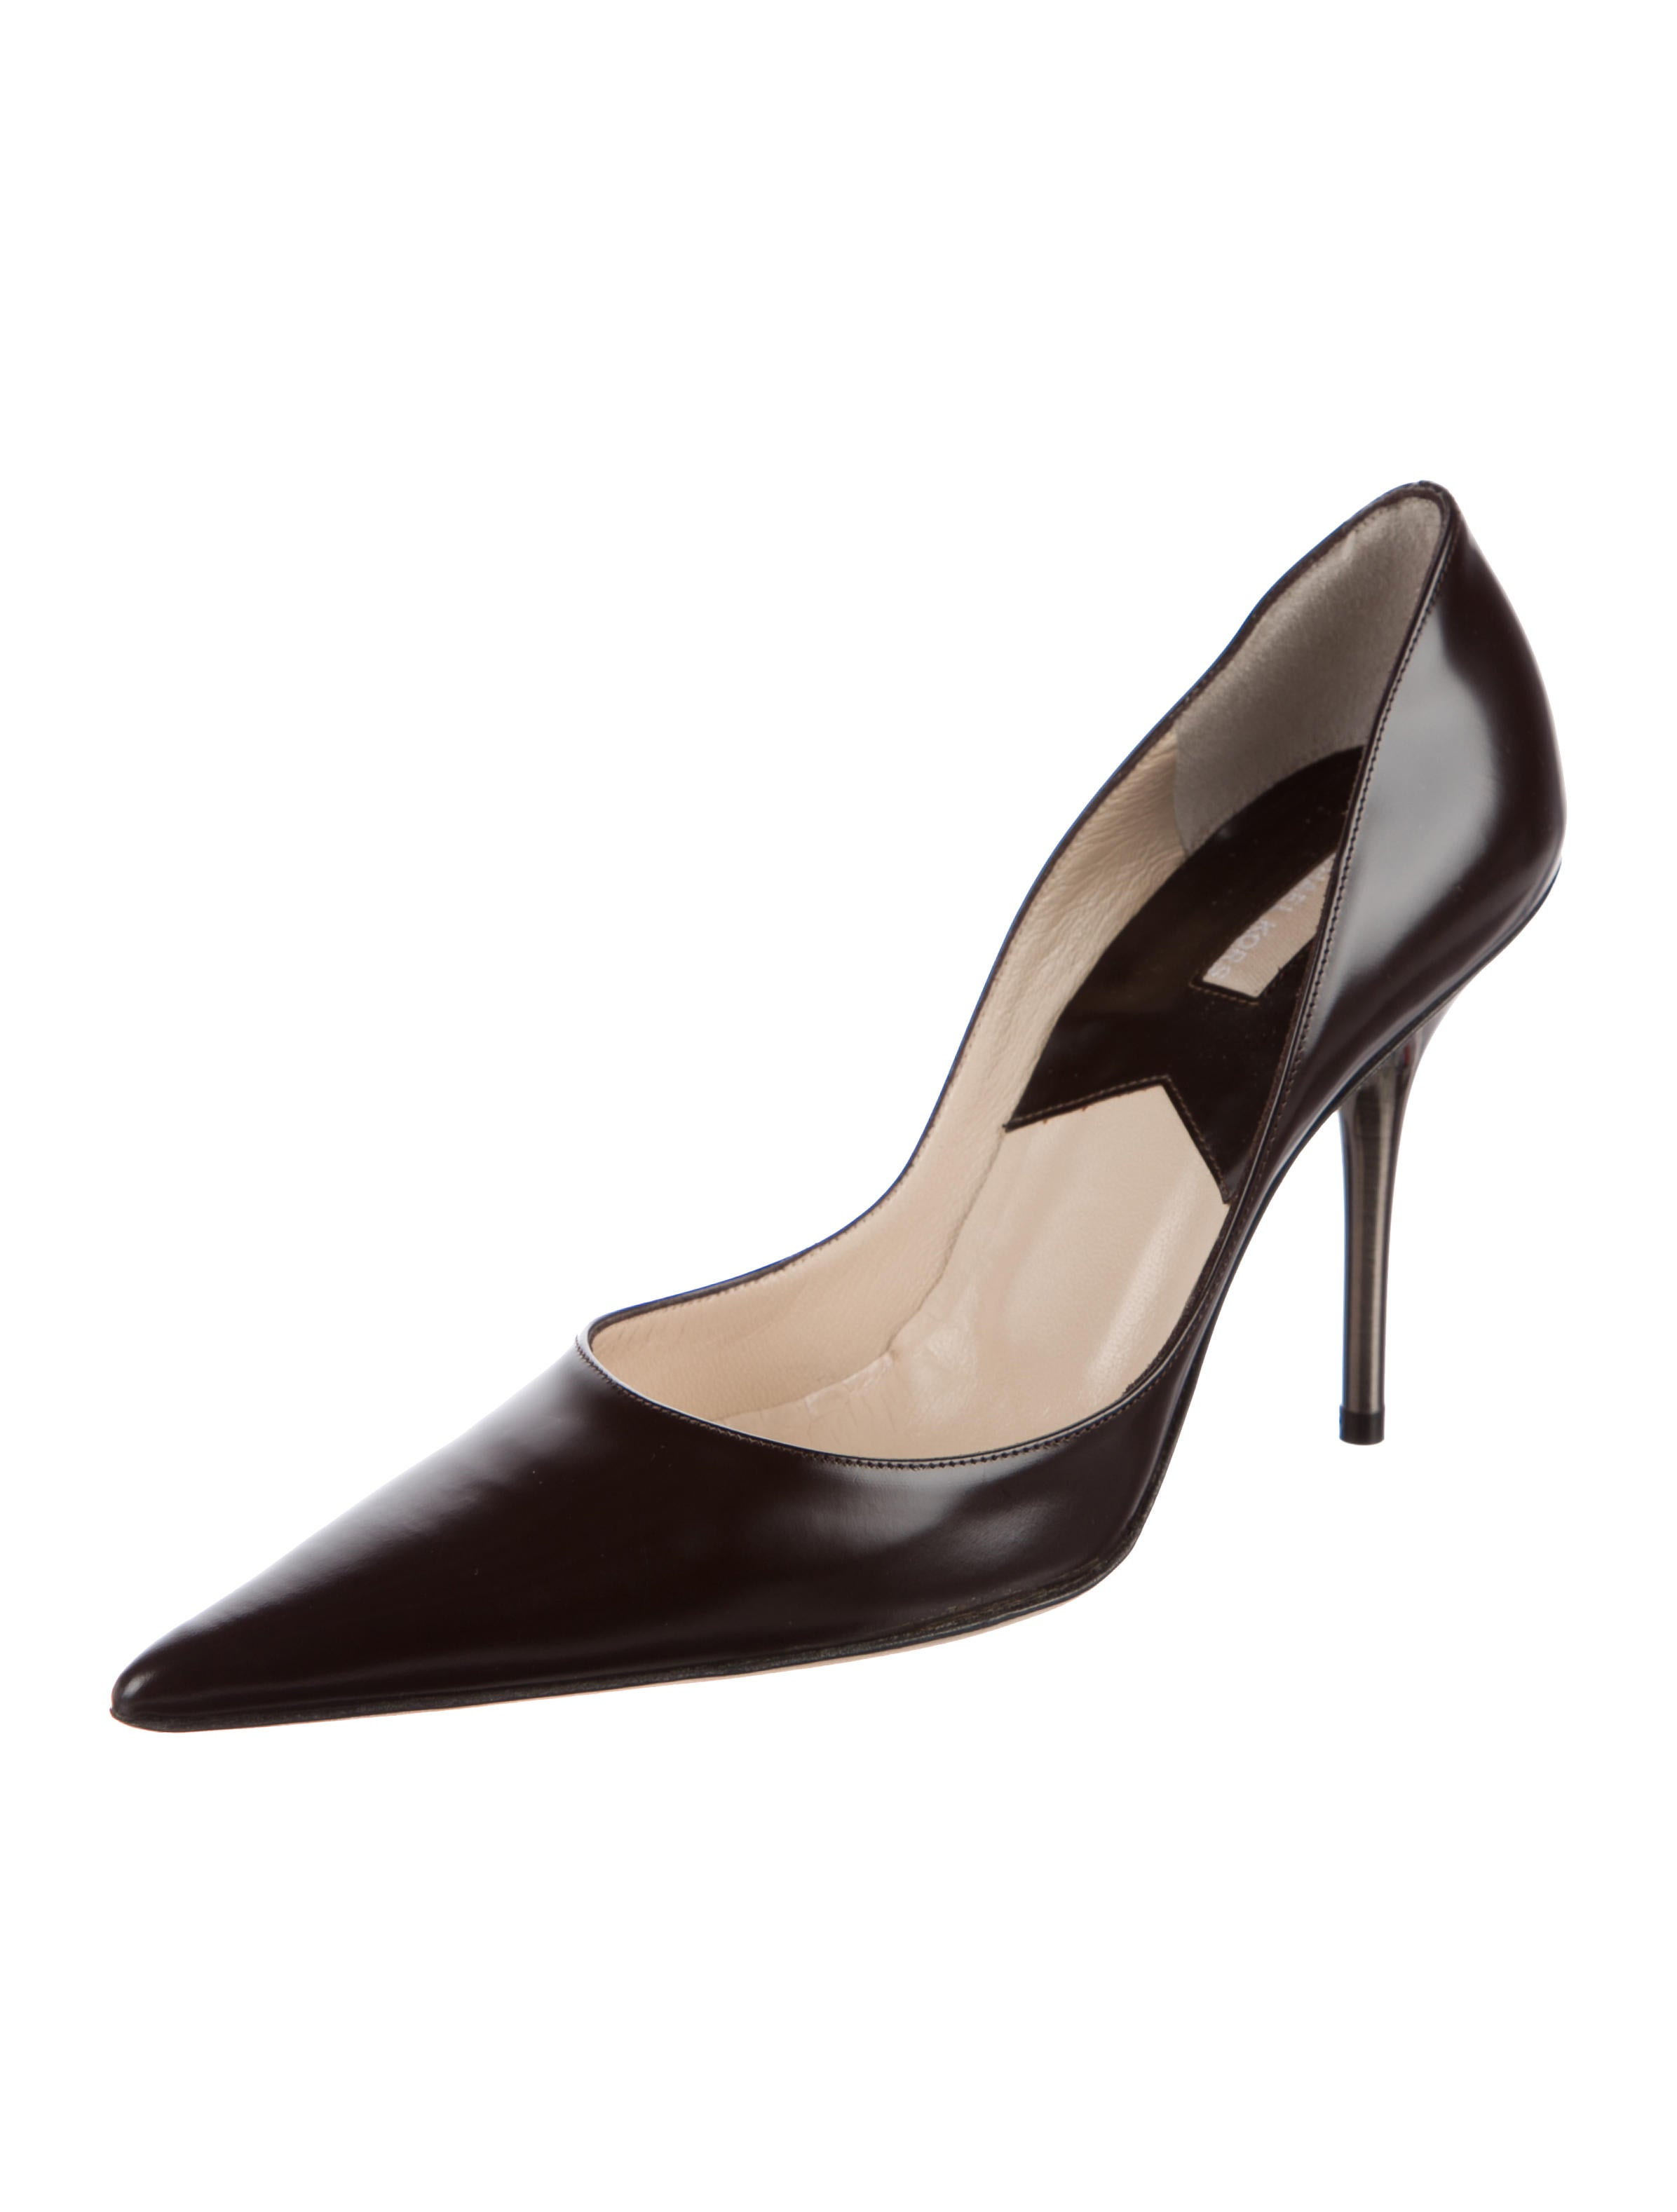 michael kors leather pointed toe pumps shoes mic58936 the realreal. Black Bedroom Furniture Sets. Home Design Ideas